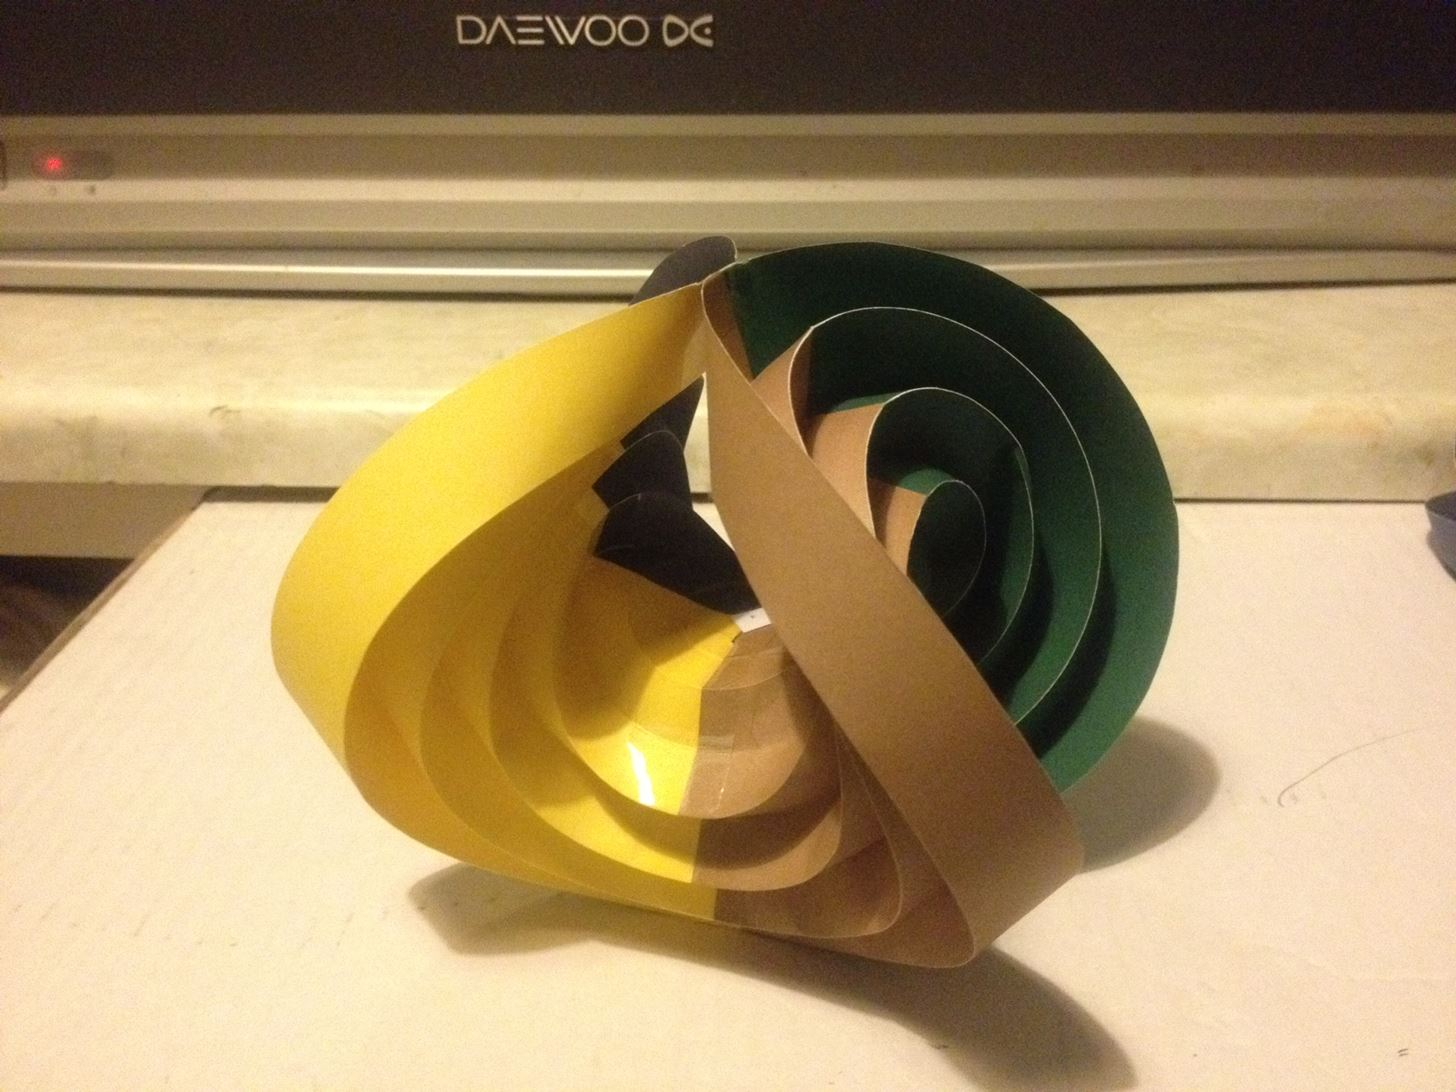 Math Craft Inspiration of the Week: The Curve-Crease Sculptures of Erik Demaine